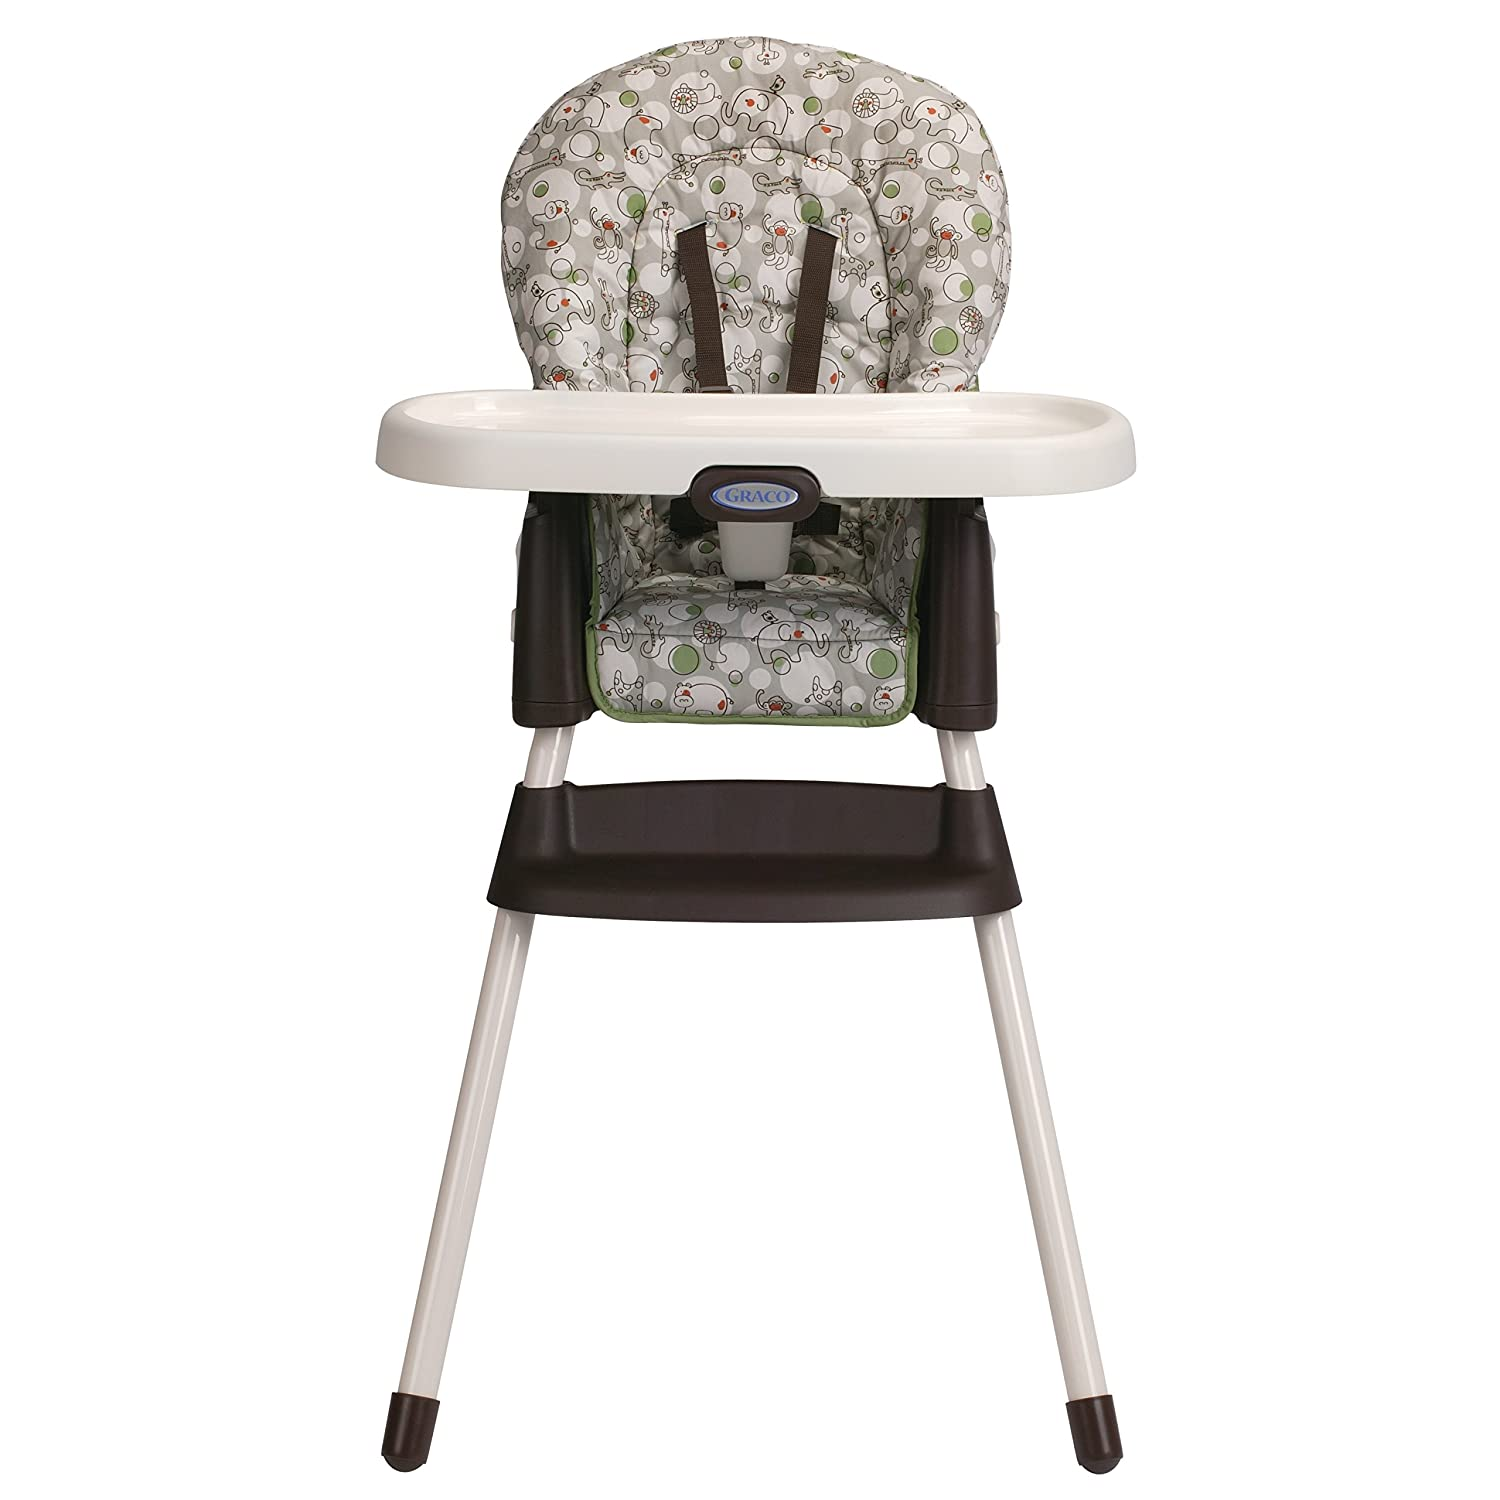 Amazon Graco Simpleswitch Portable High Chair and Booster